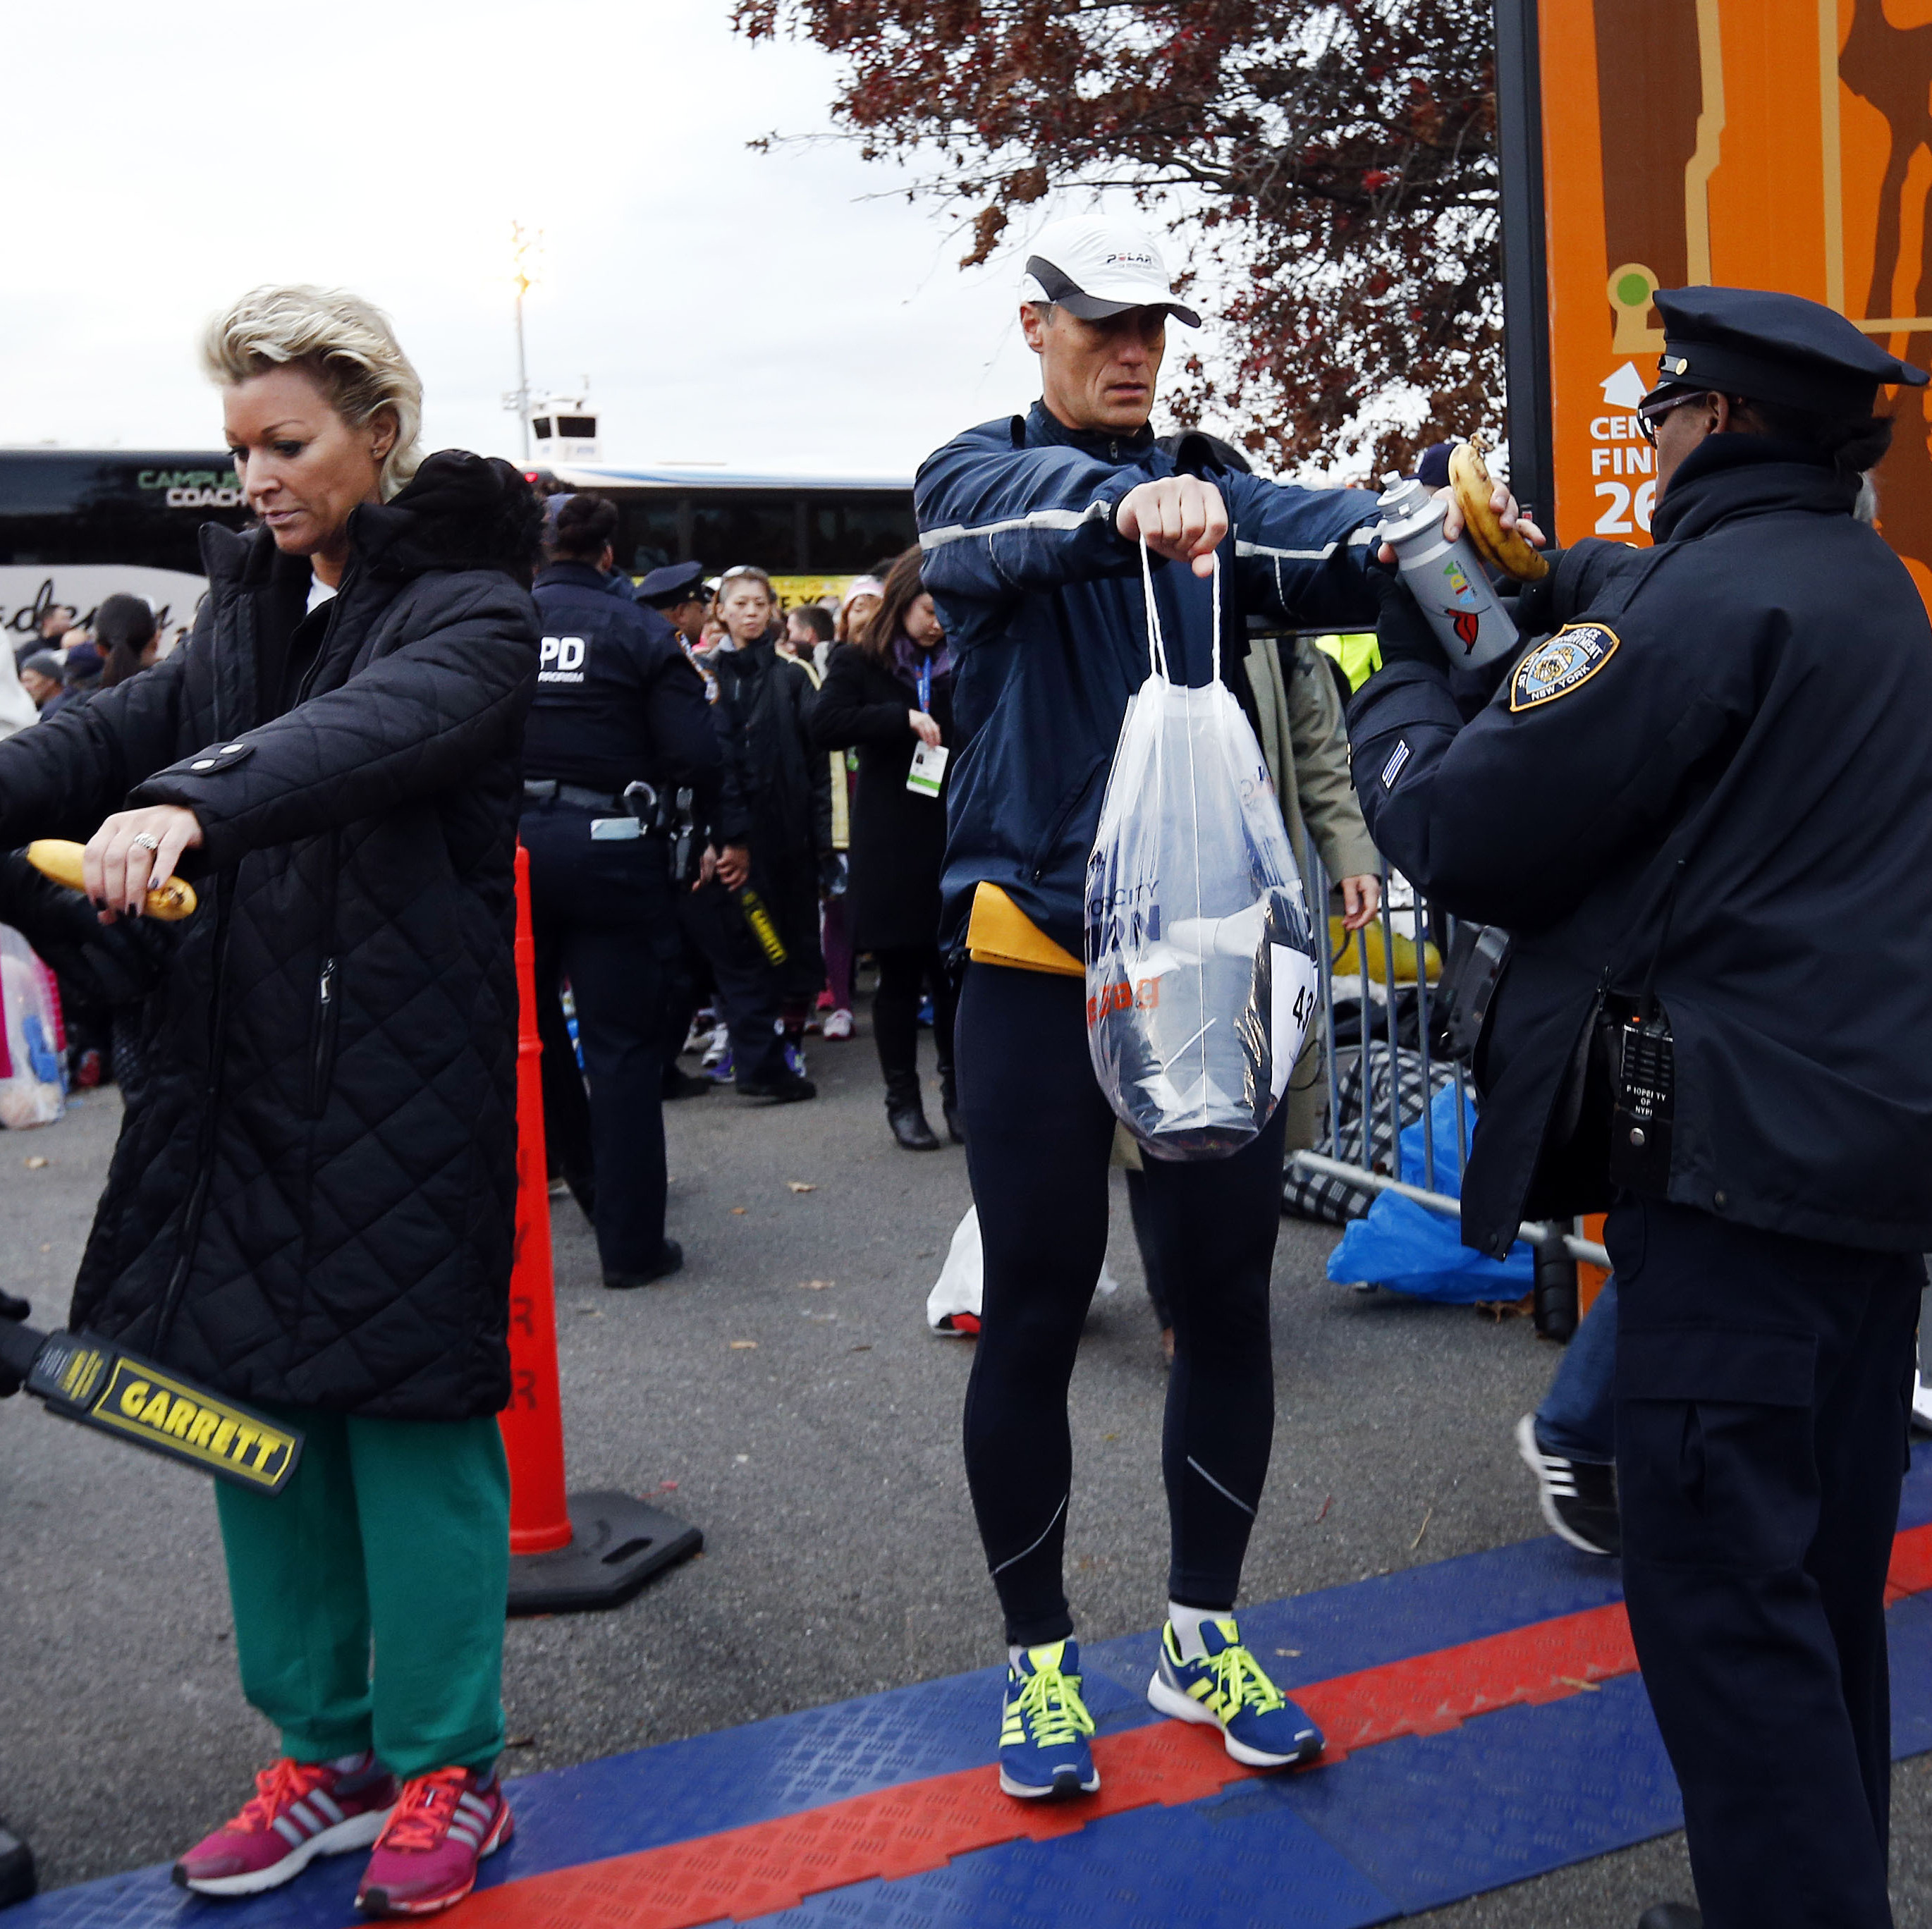 Runners are screened by police officers as they arrive for the New York City Marathon on Sunday.